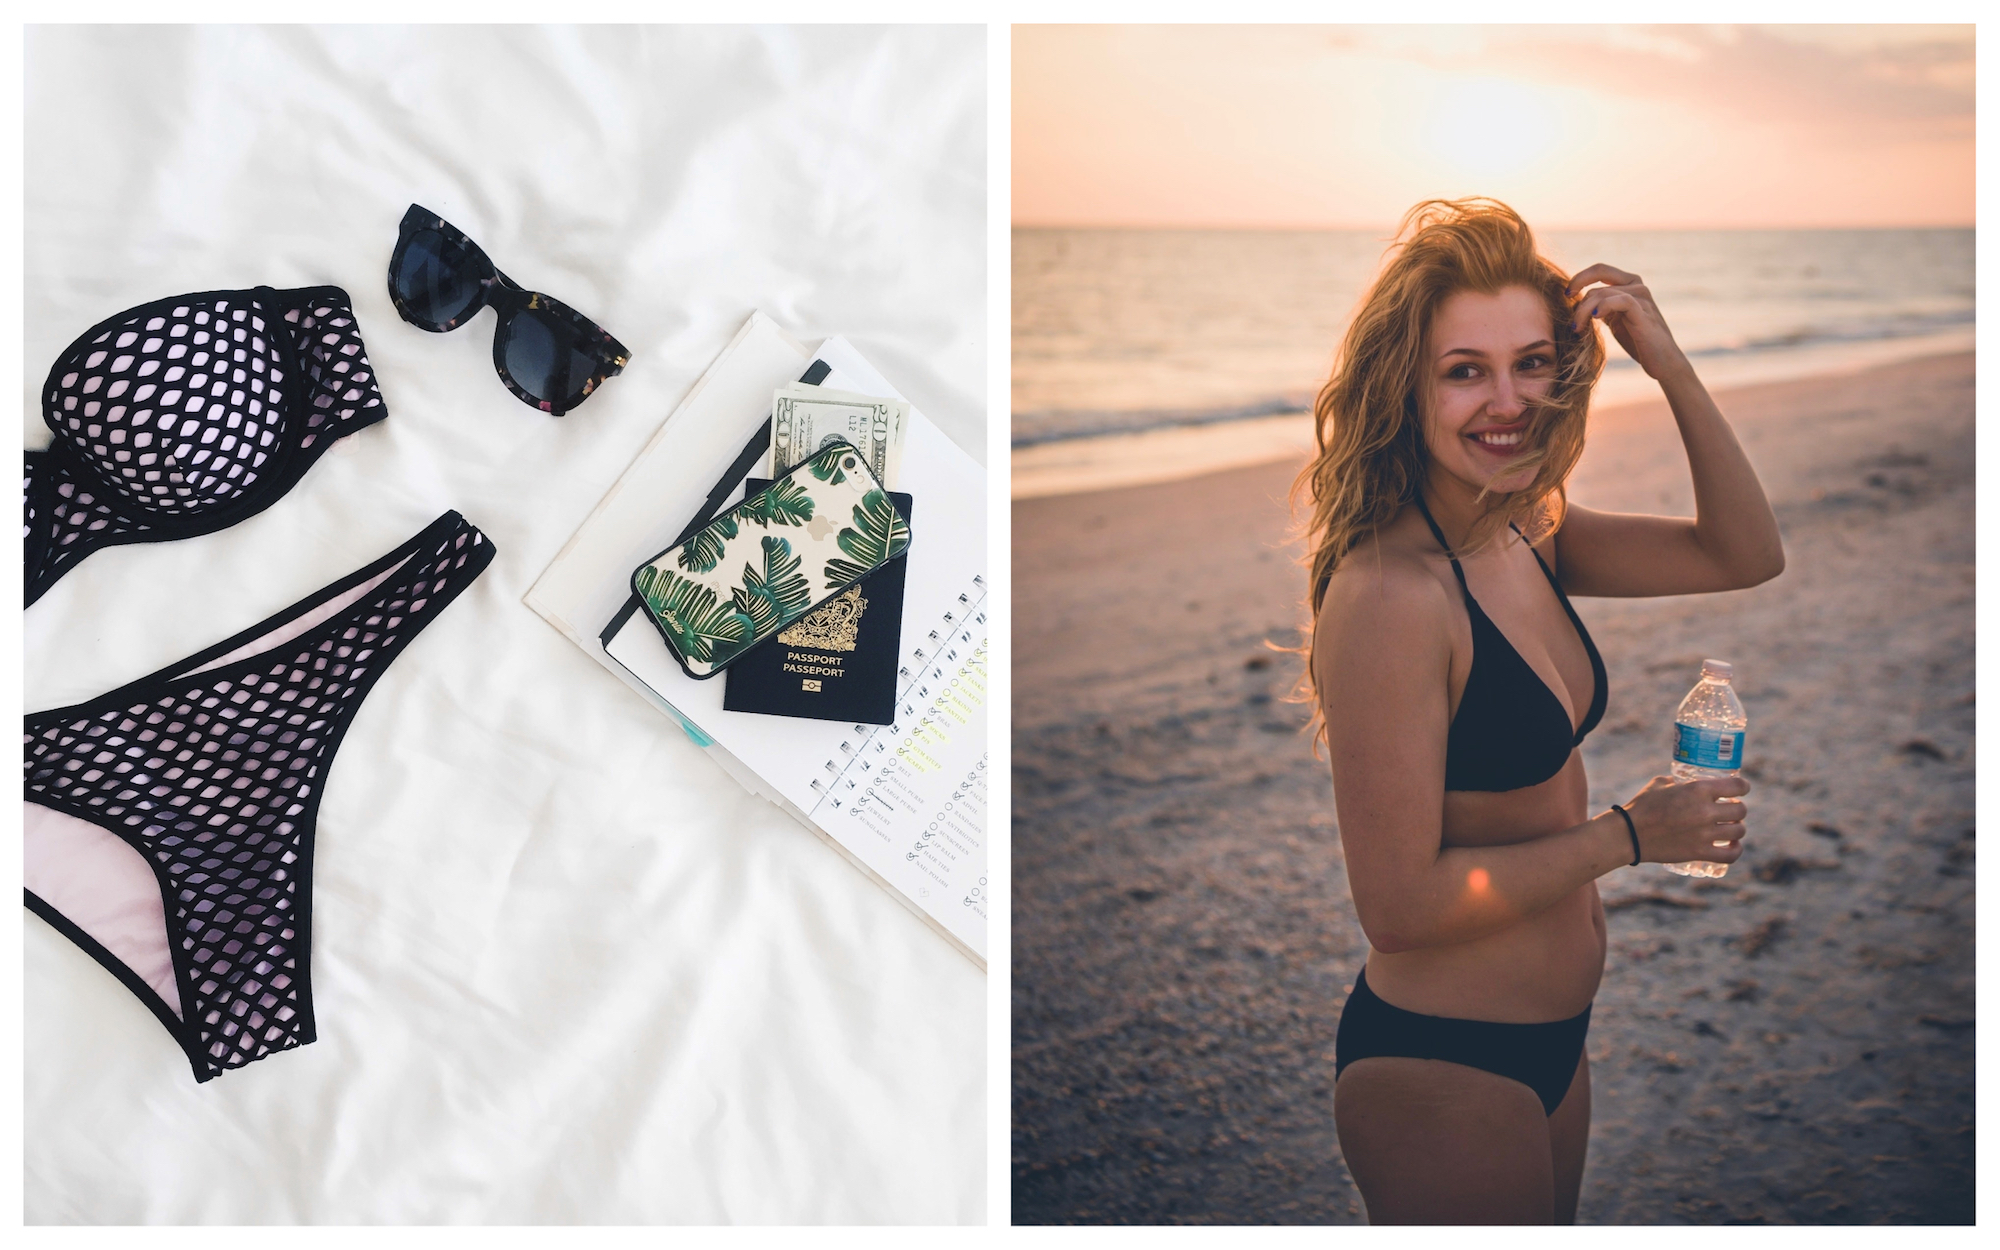 HiP Paris Blog tells you how to prepare for your summer holiday in Paris including bikini shopping for great black and pink two-pieces (left) and plain black bikinis to wear at the beach (right).